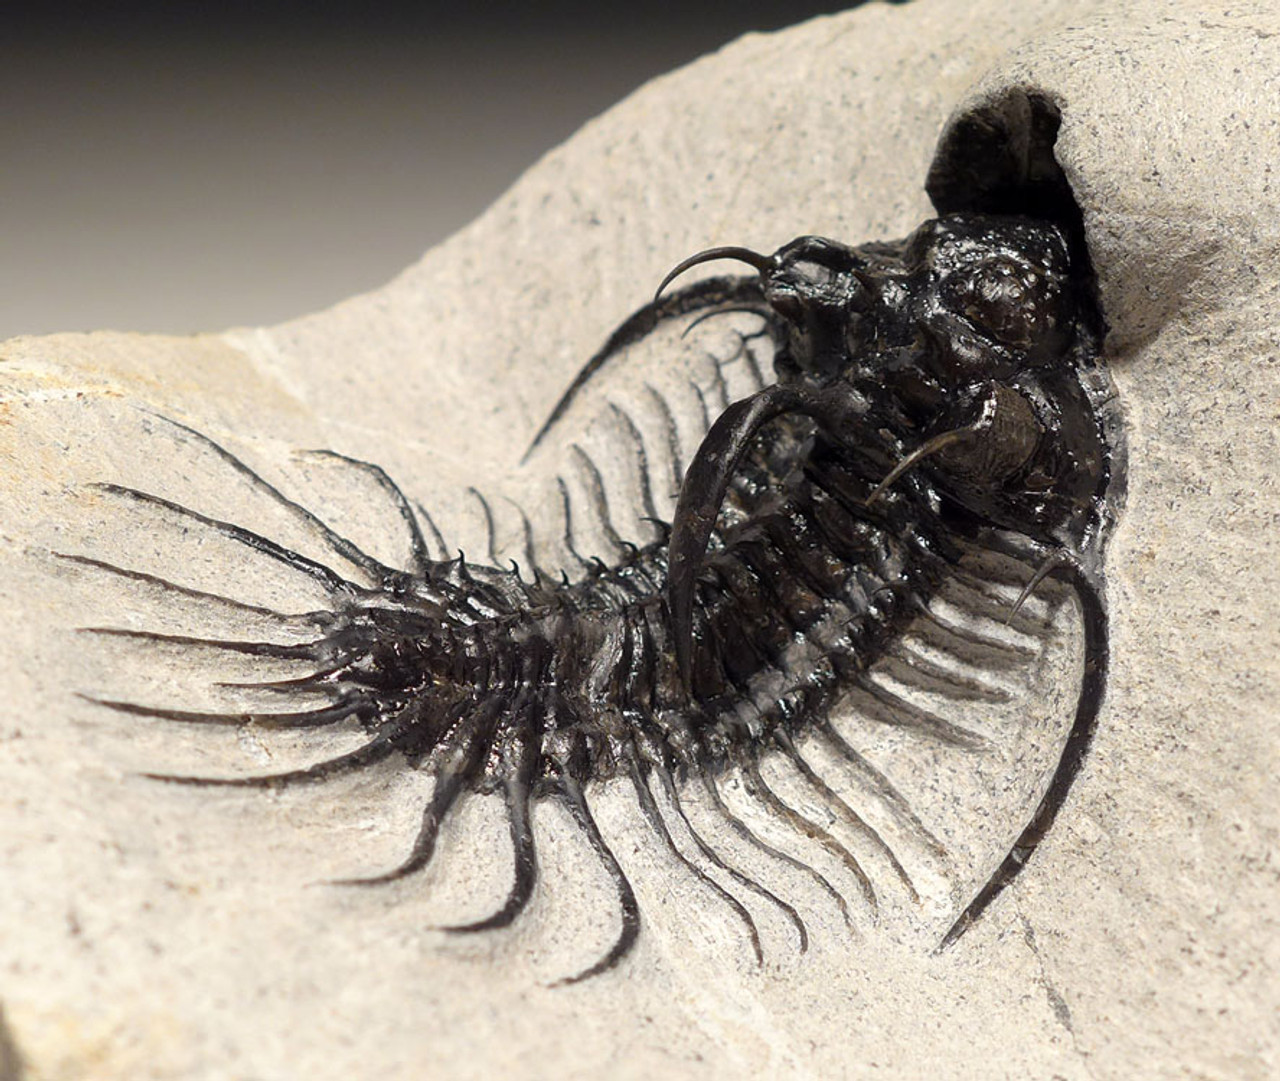 RARE SUPREME GRADE LONG-SPINED SPINY QUADROPS TRILOBITE WITH ALL SPINES EXPOSED *TRX429